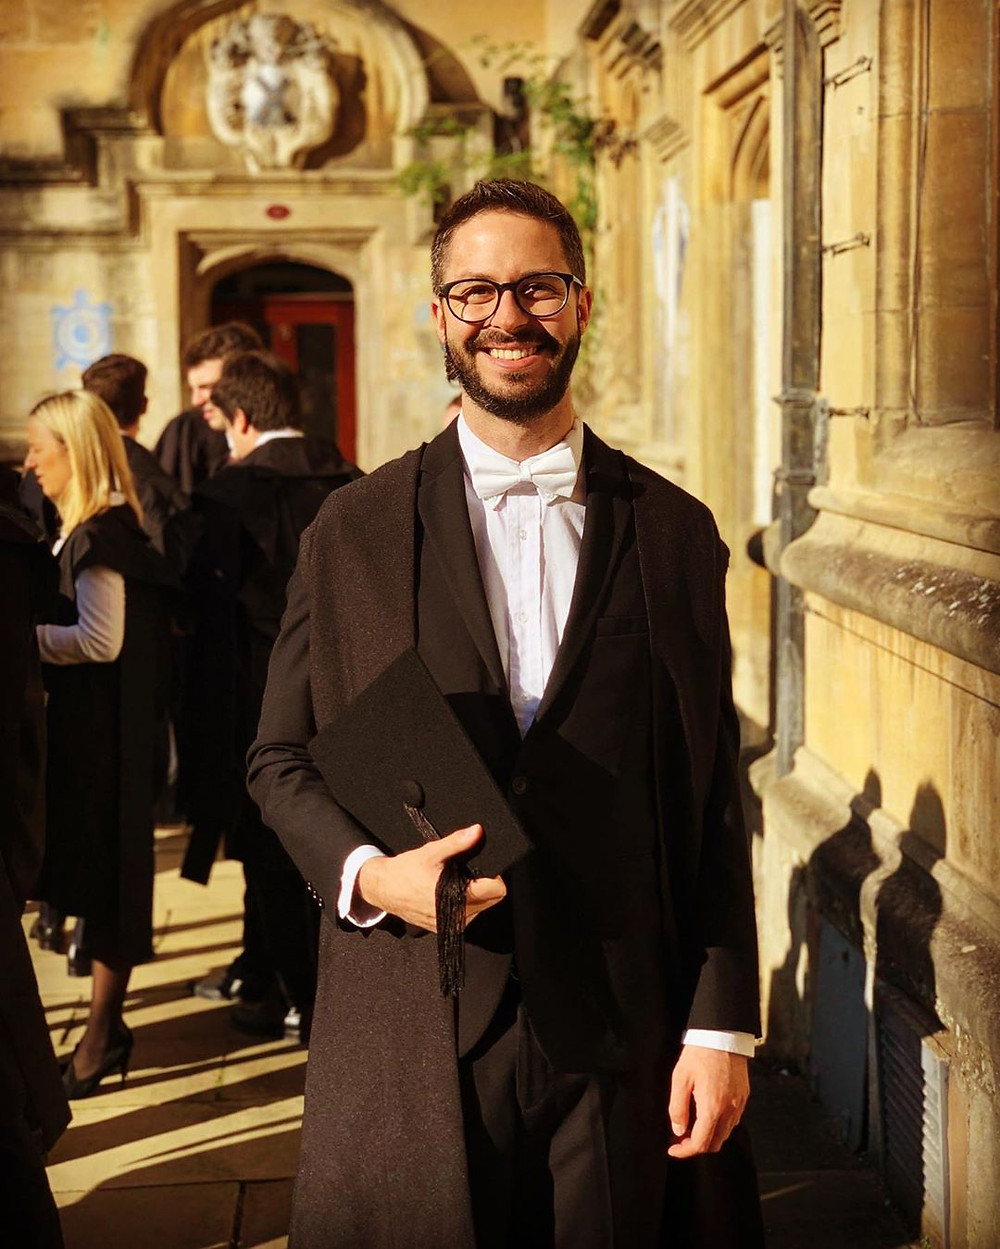 A photo of Eduardo Gutierrez graduation at oxford